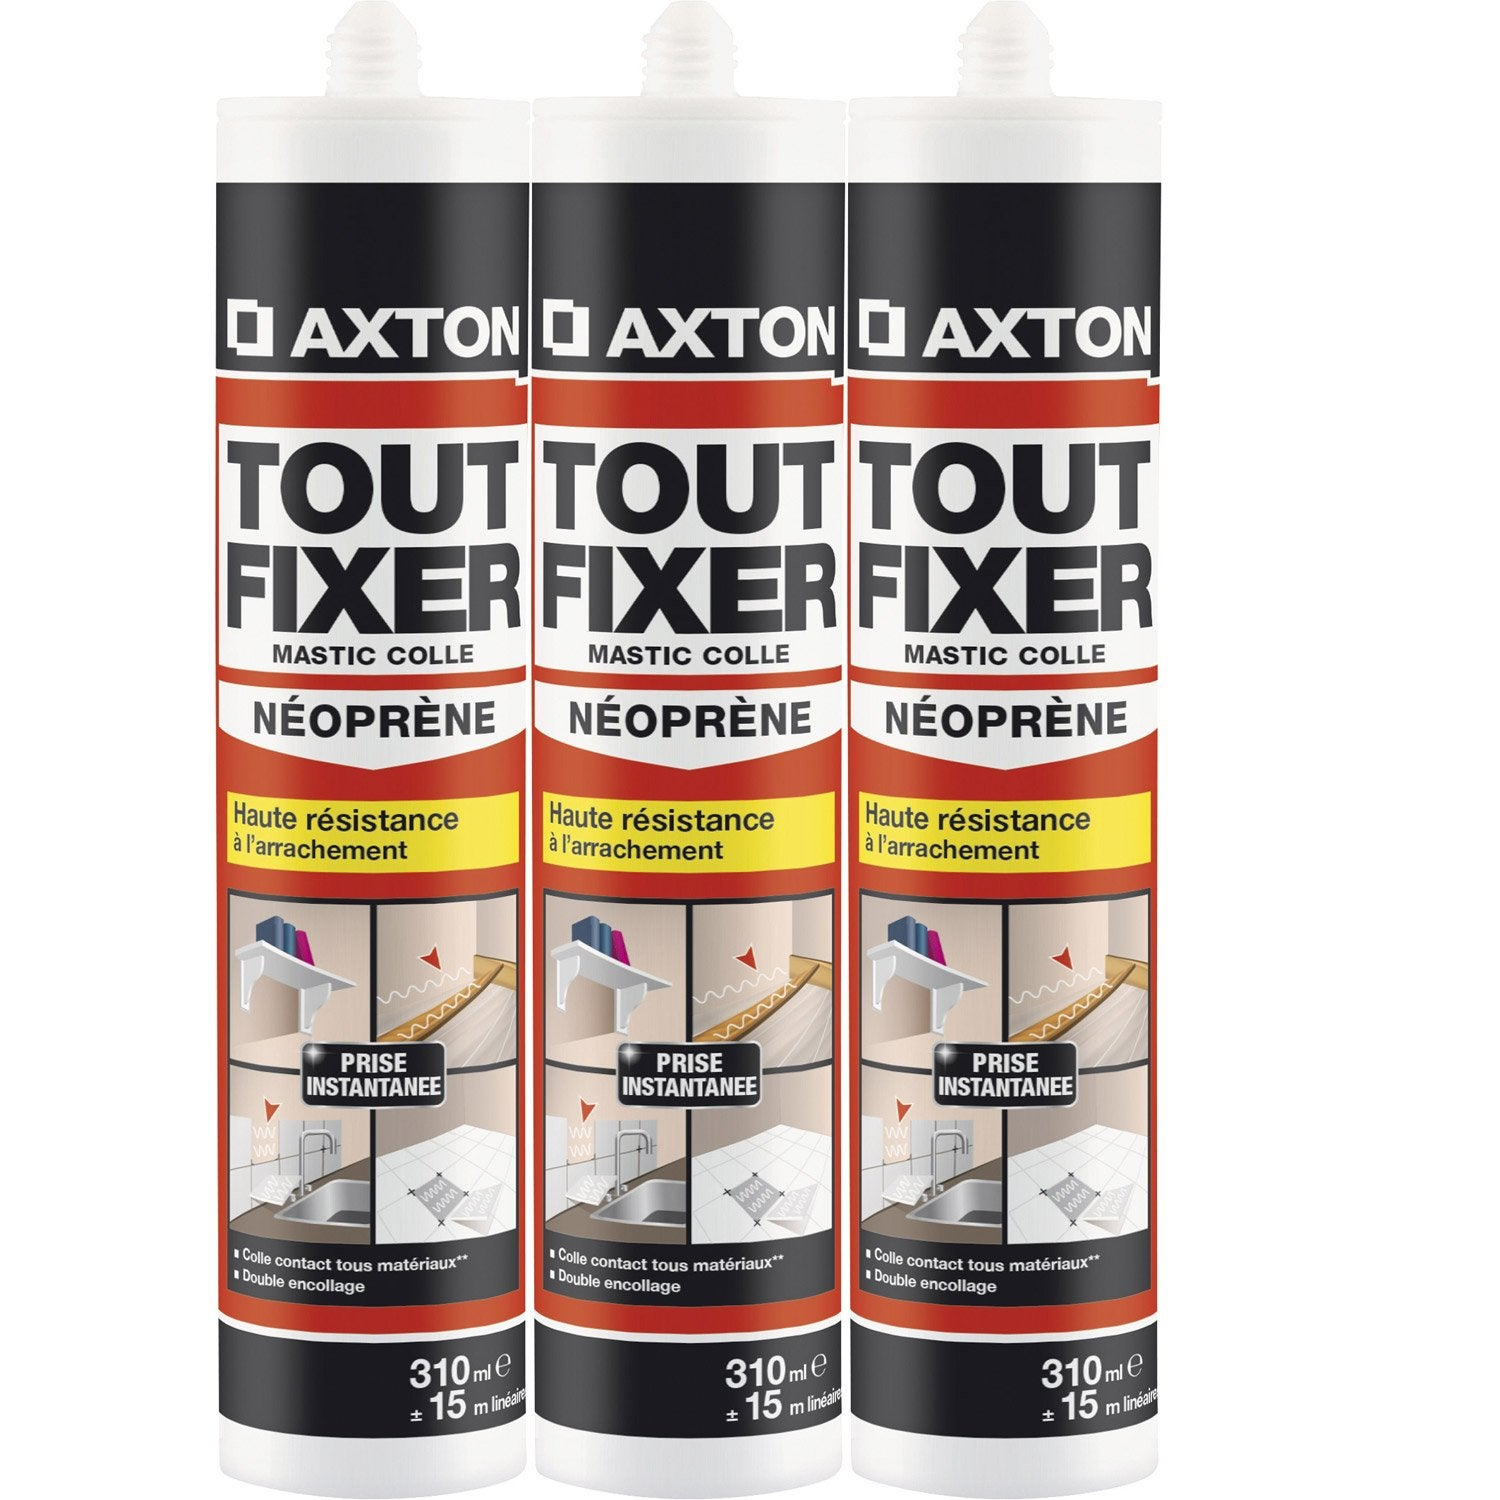 colle n opr ne mastic tout fixer axton 310 ml leroy merlin. Black Bedroom Furniture Sets. Home Design Ideas